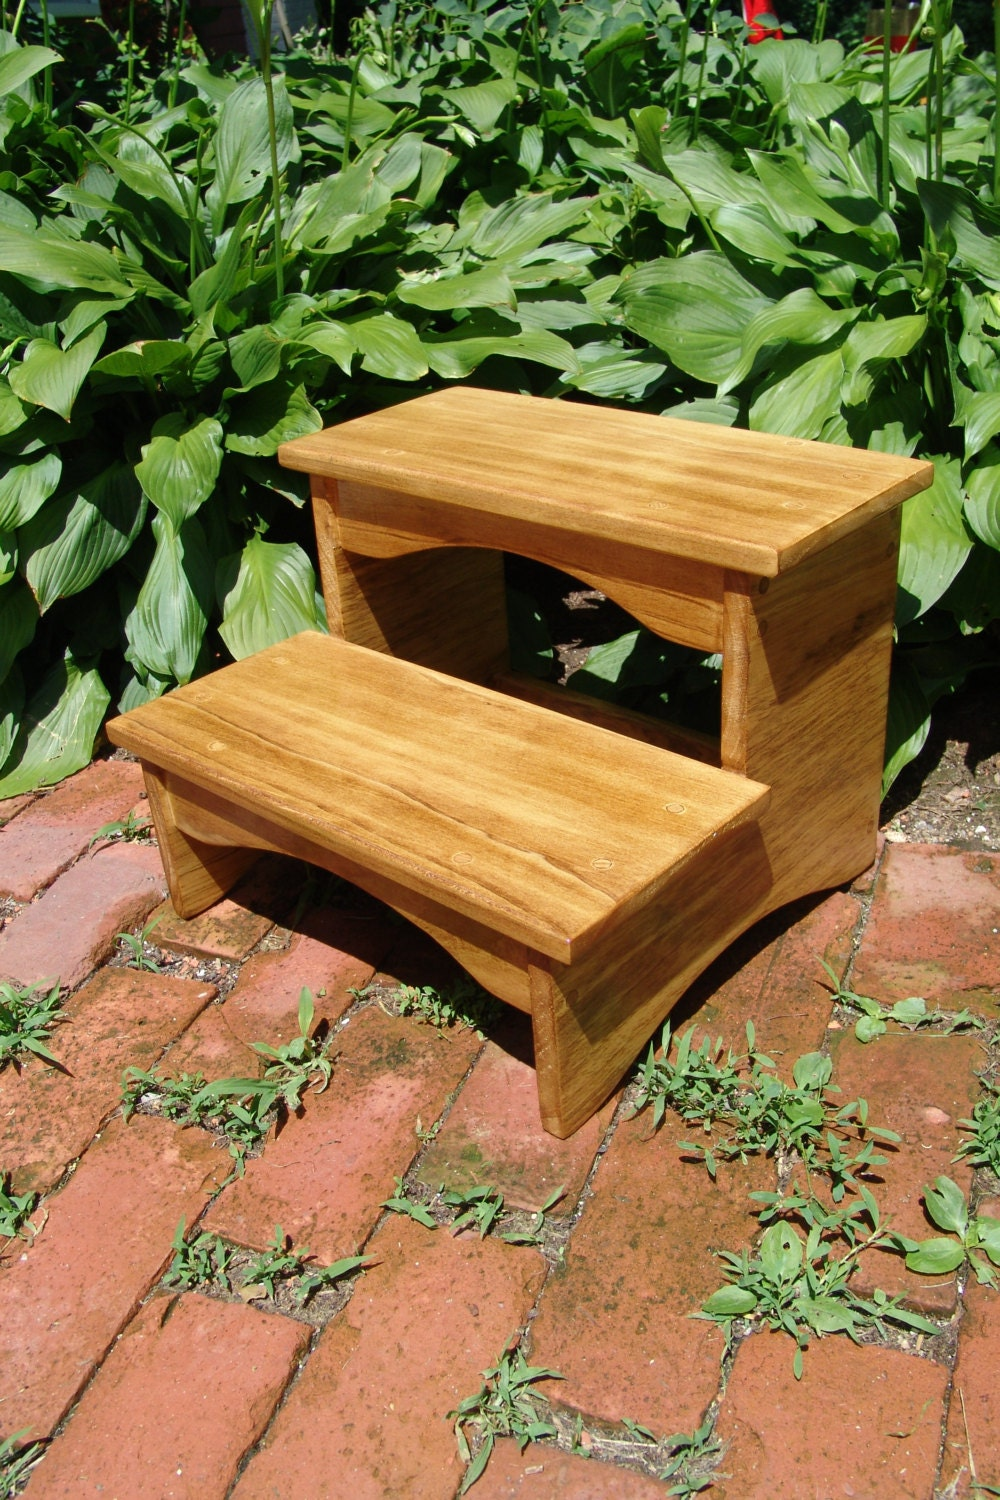 handcrafted heavy duty step stool wooden kitchen bedside. Black Bedroom Furniture Sets. Home Design Ideas